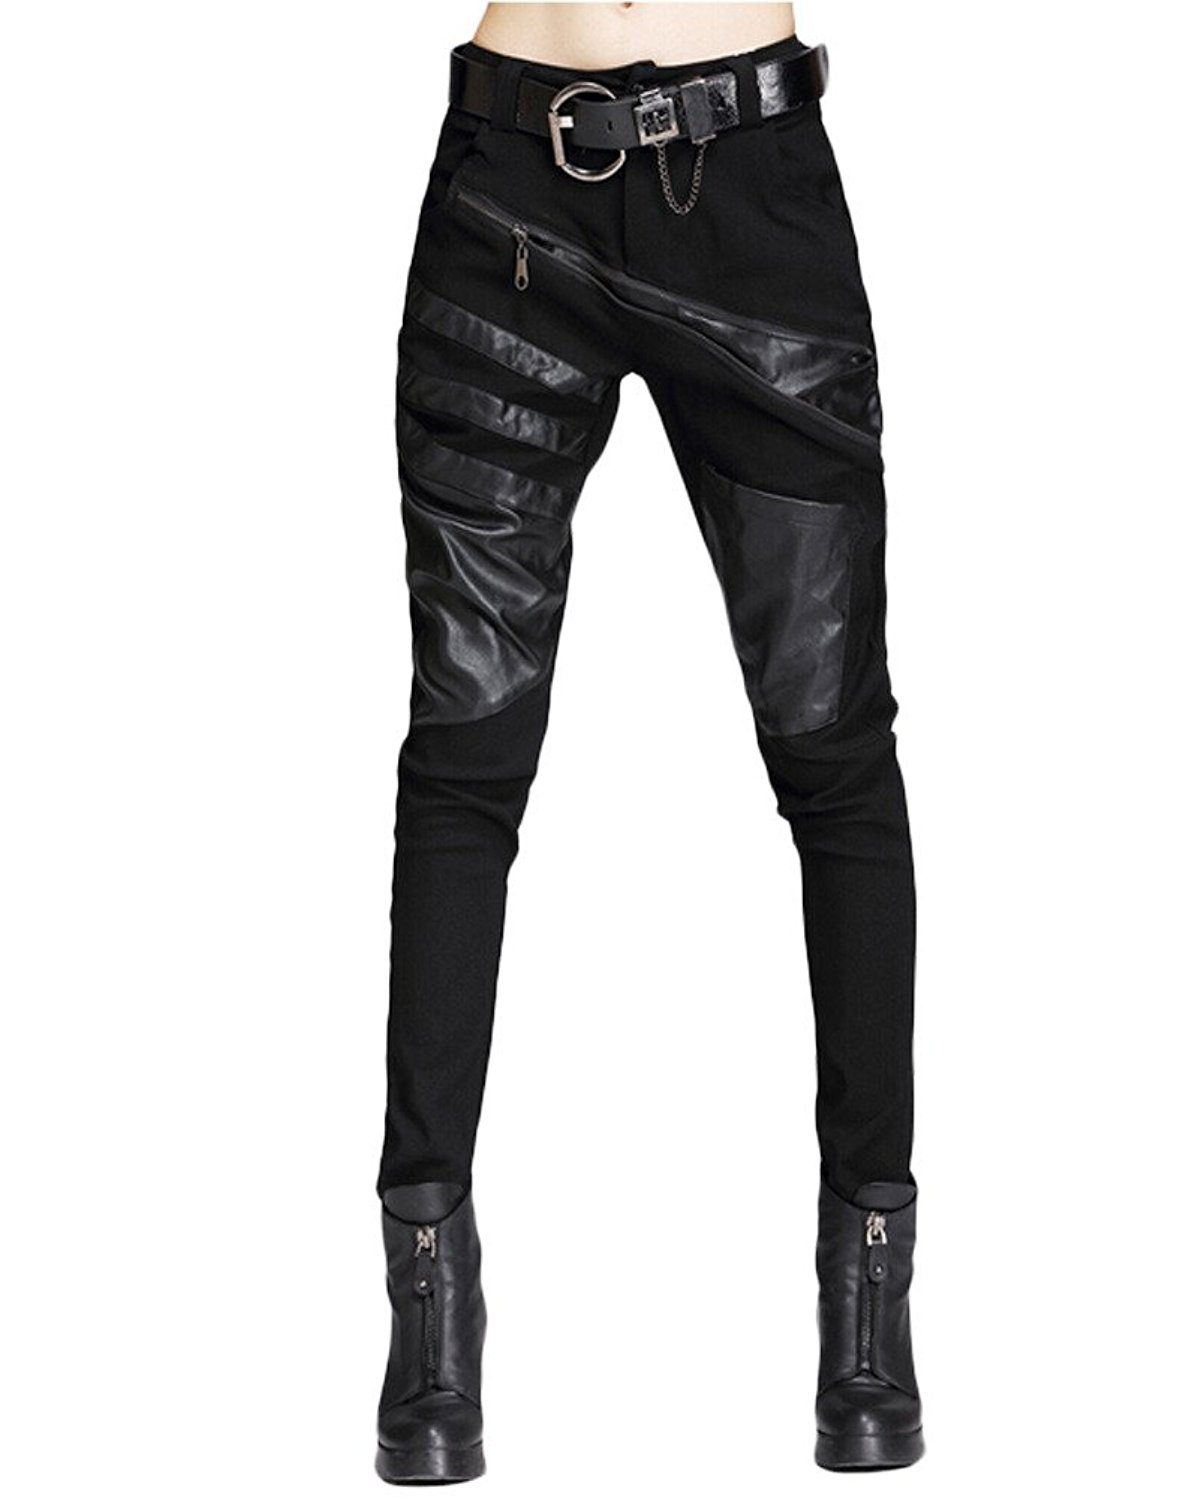 67d9aa6bf4e Buy Minibee Pernalized Punk Street Style Harem Pants Patchwork ...